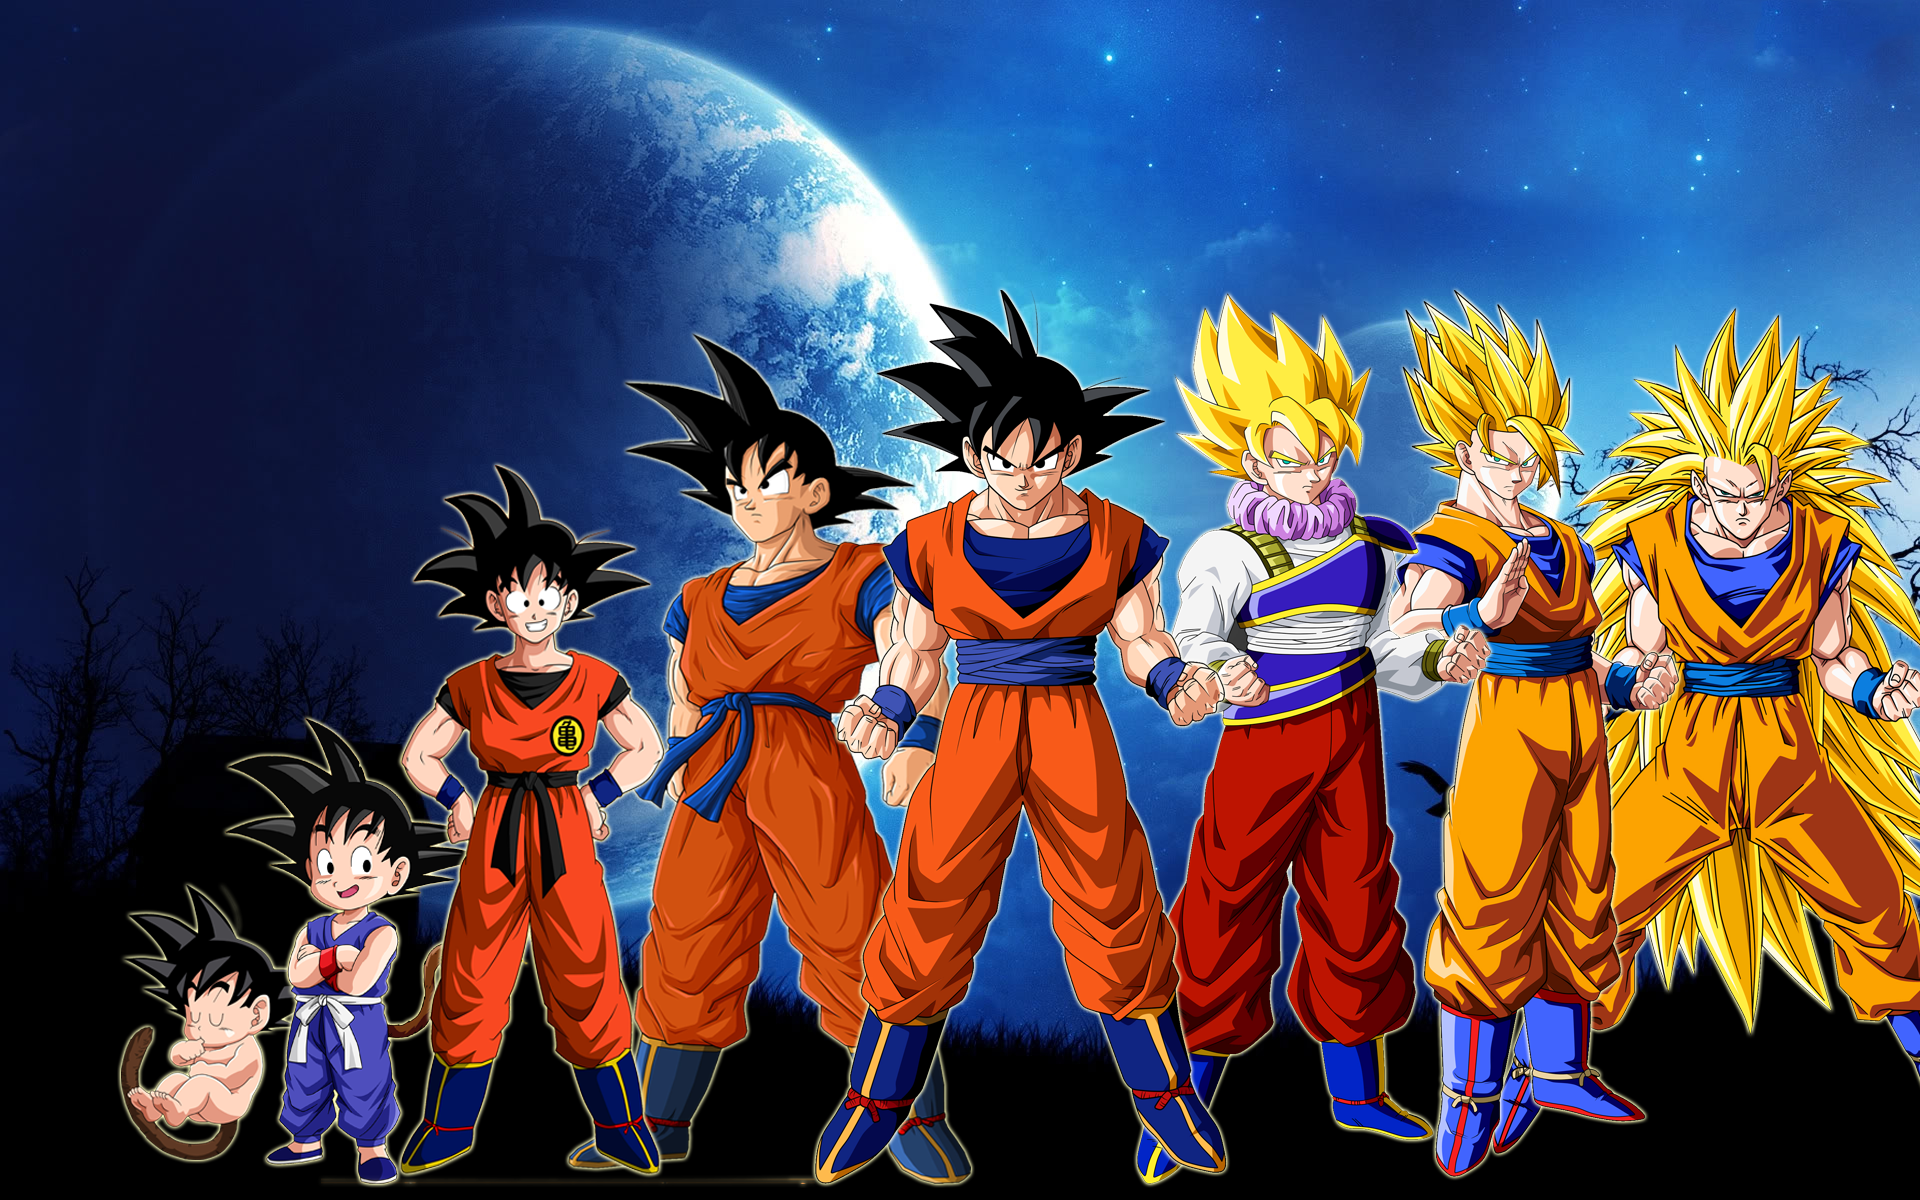 dragon ball z goku story by dragonwarhd d3iafto 1920x1200